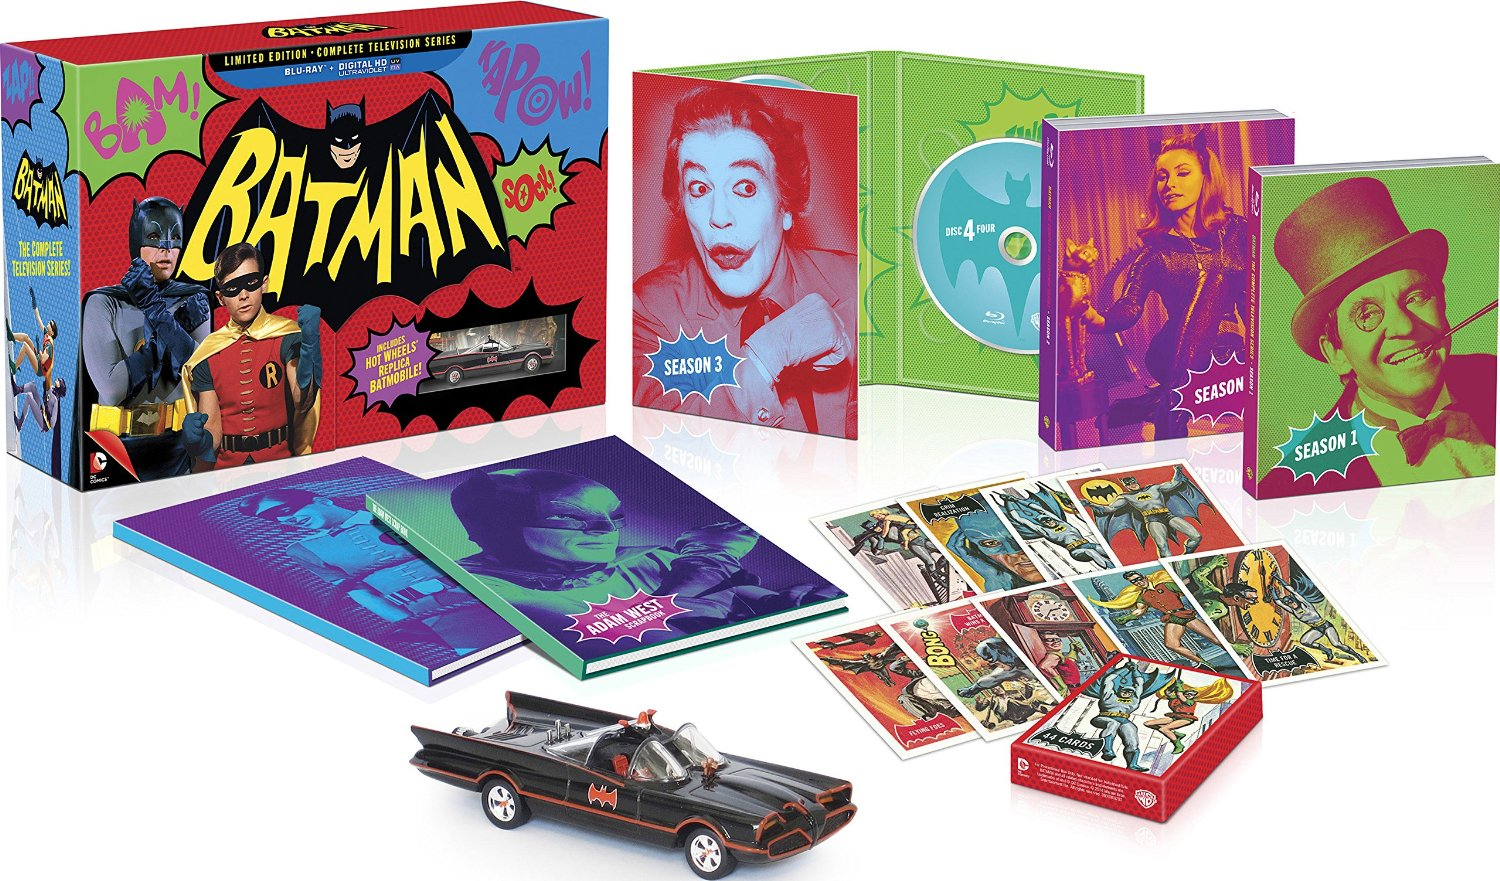 """The limited edition Blu-ray boxed set of """"Batman: The Complete Television Series,"""" released in November, 2014."""